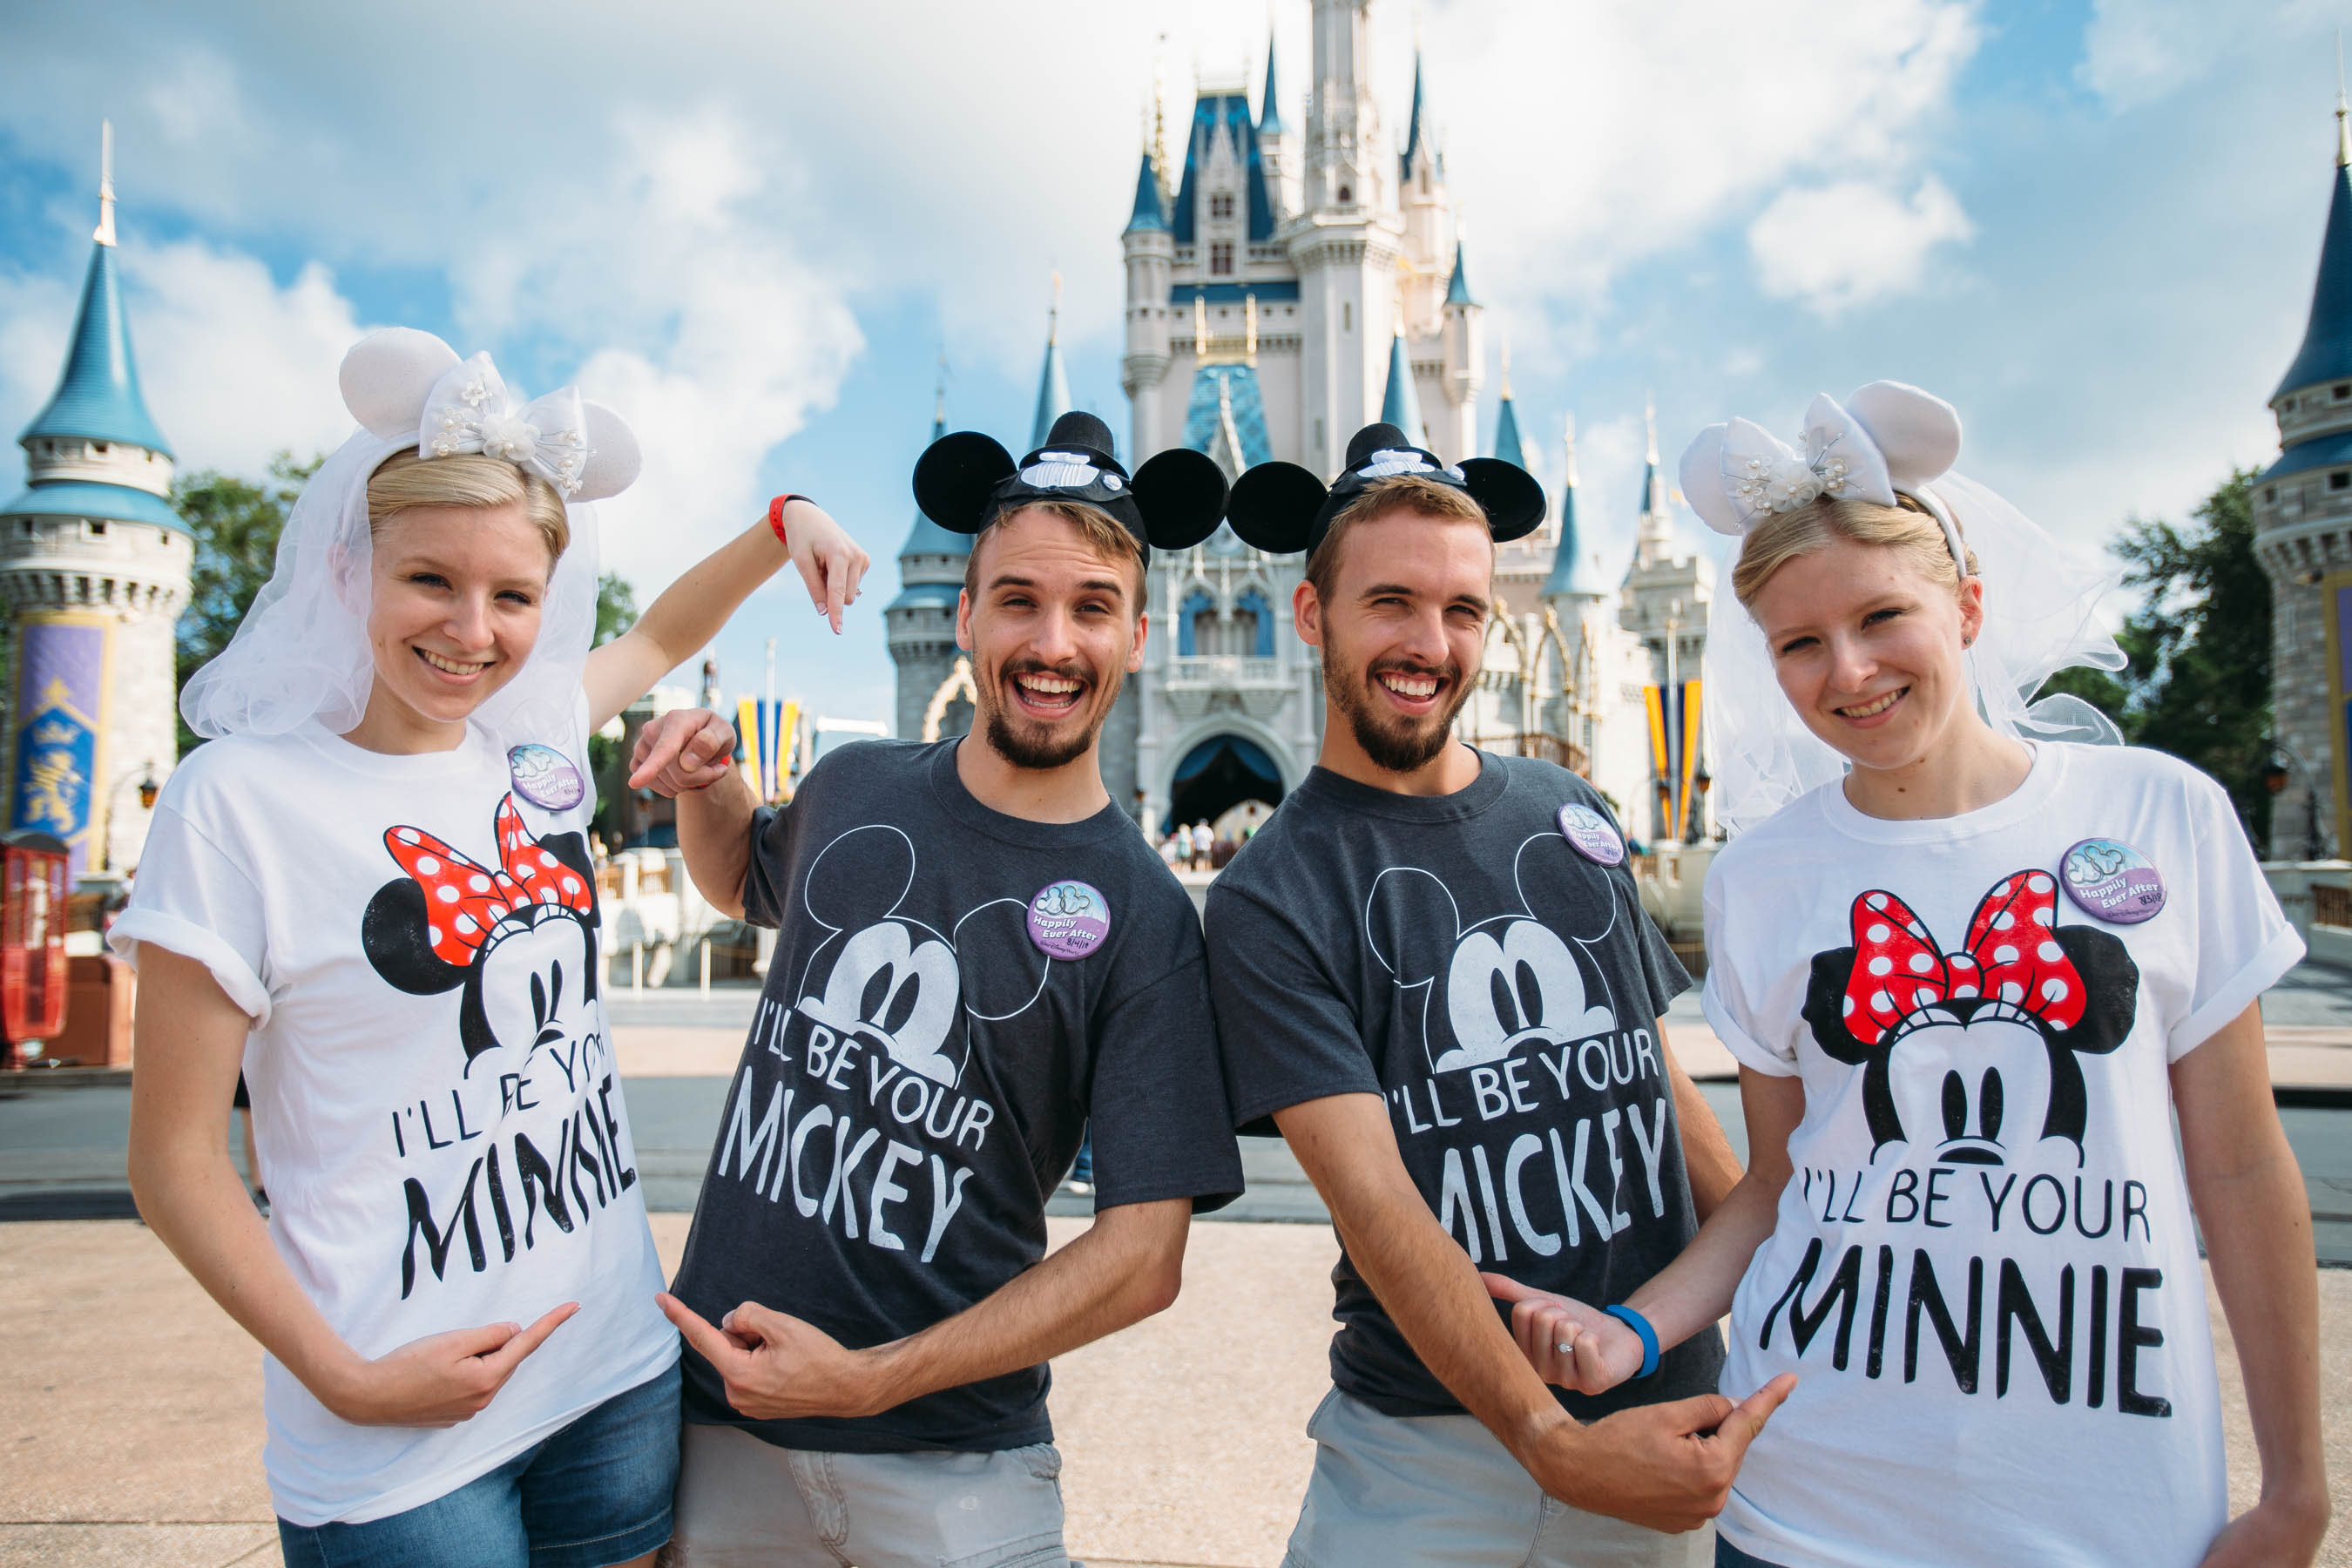 Identical Twin Couples Celebrate Joint Honeymoon At Disney